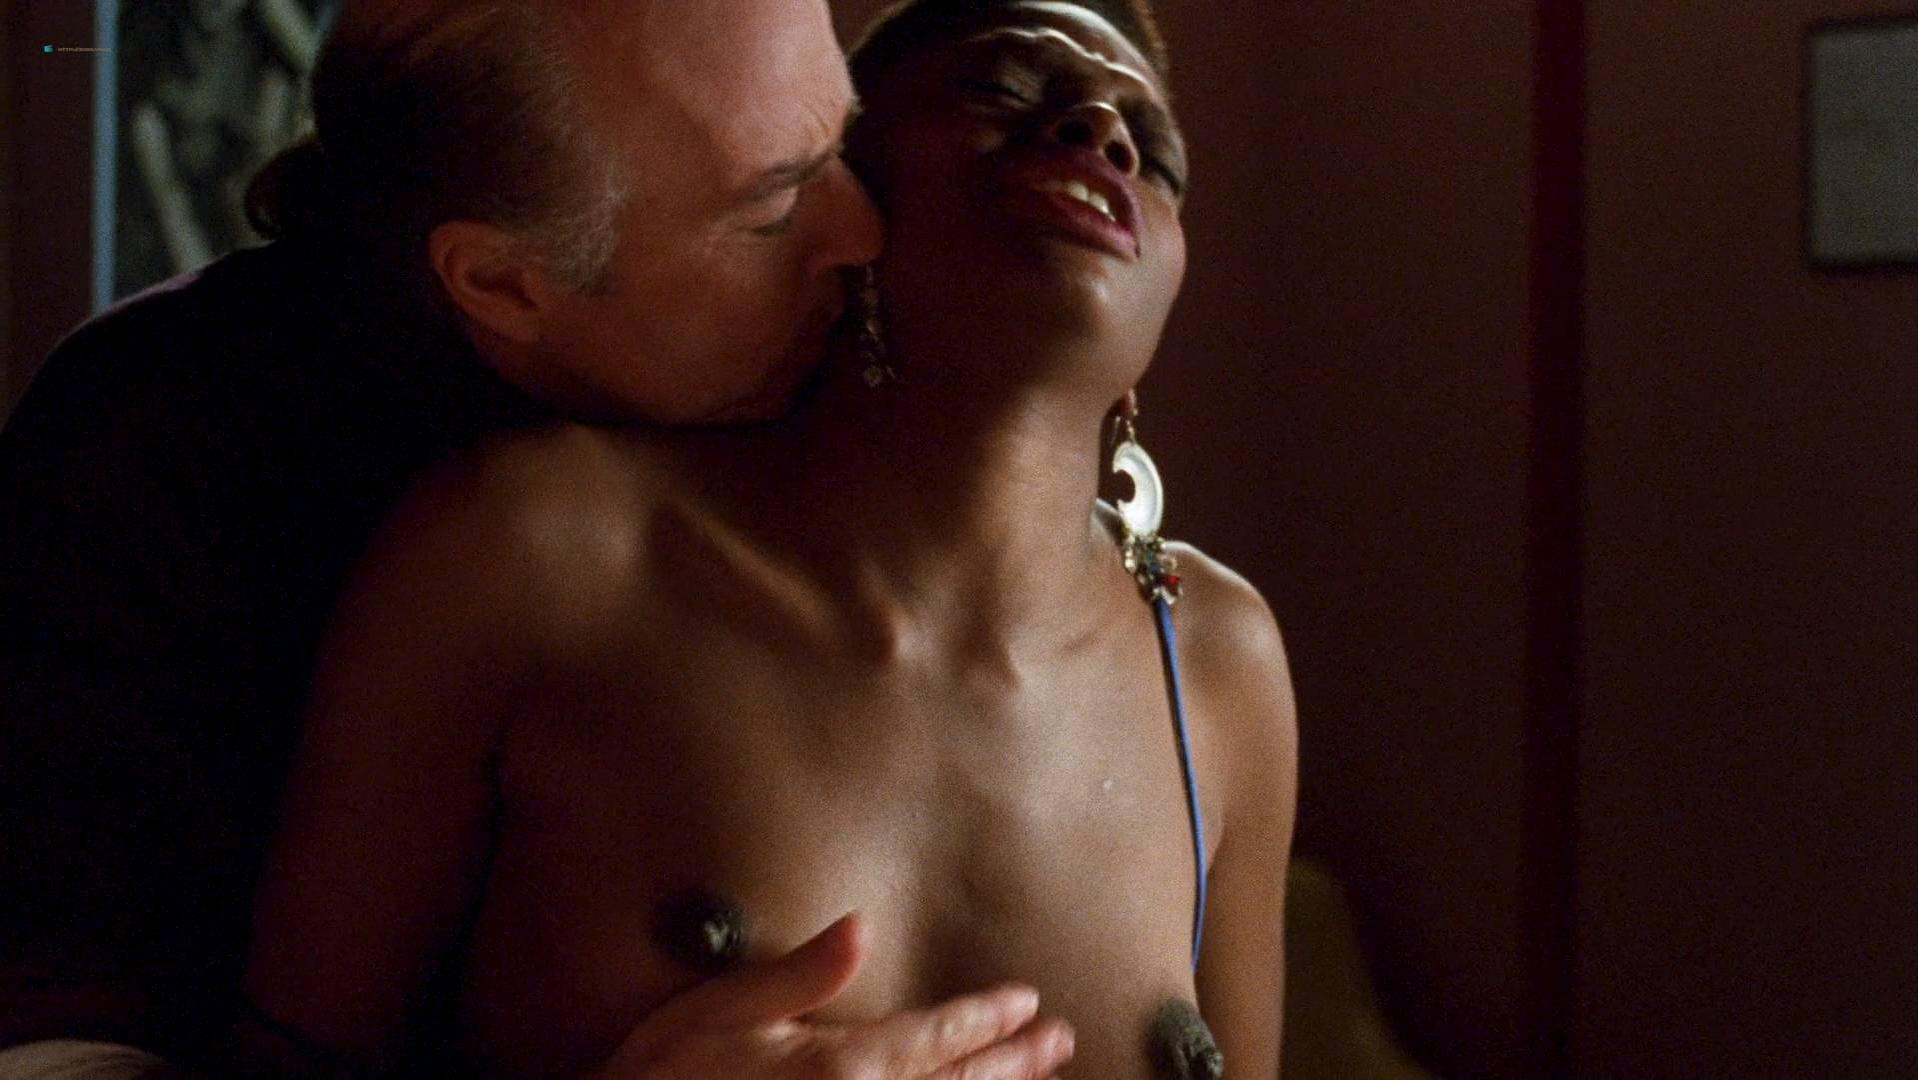 Anais Enry Nude phantasm 3 (1994) - gloria lynne henry nude scene video